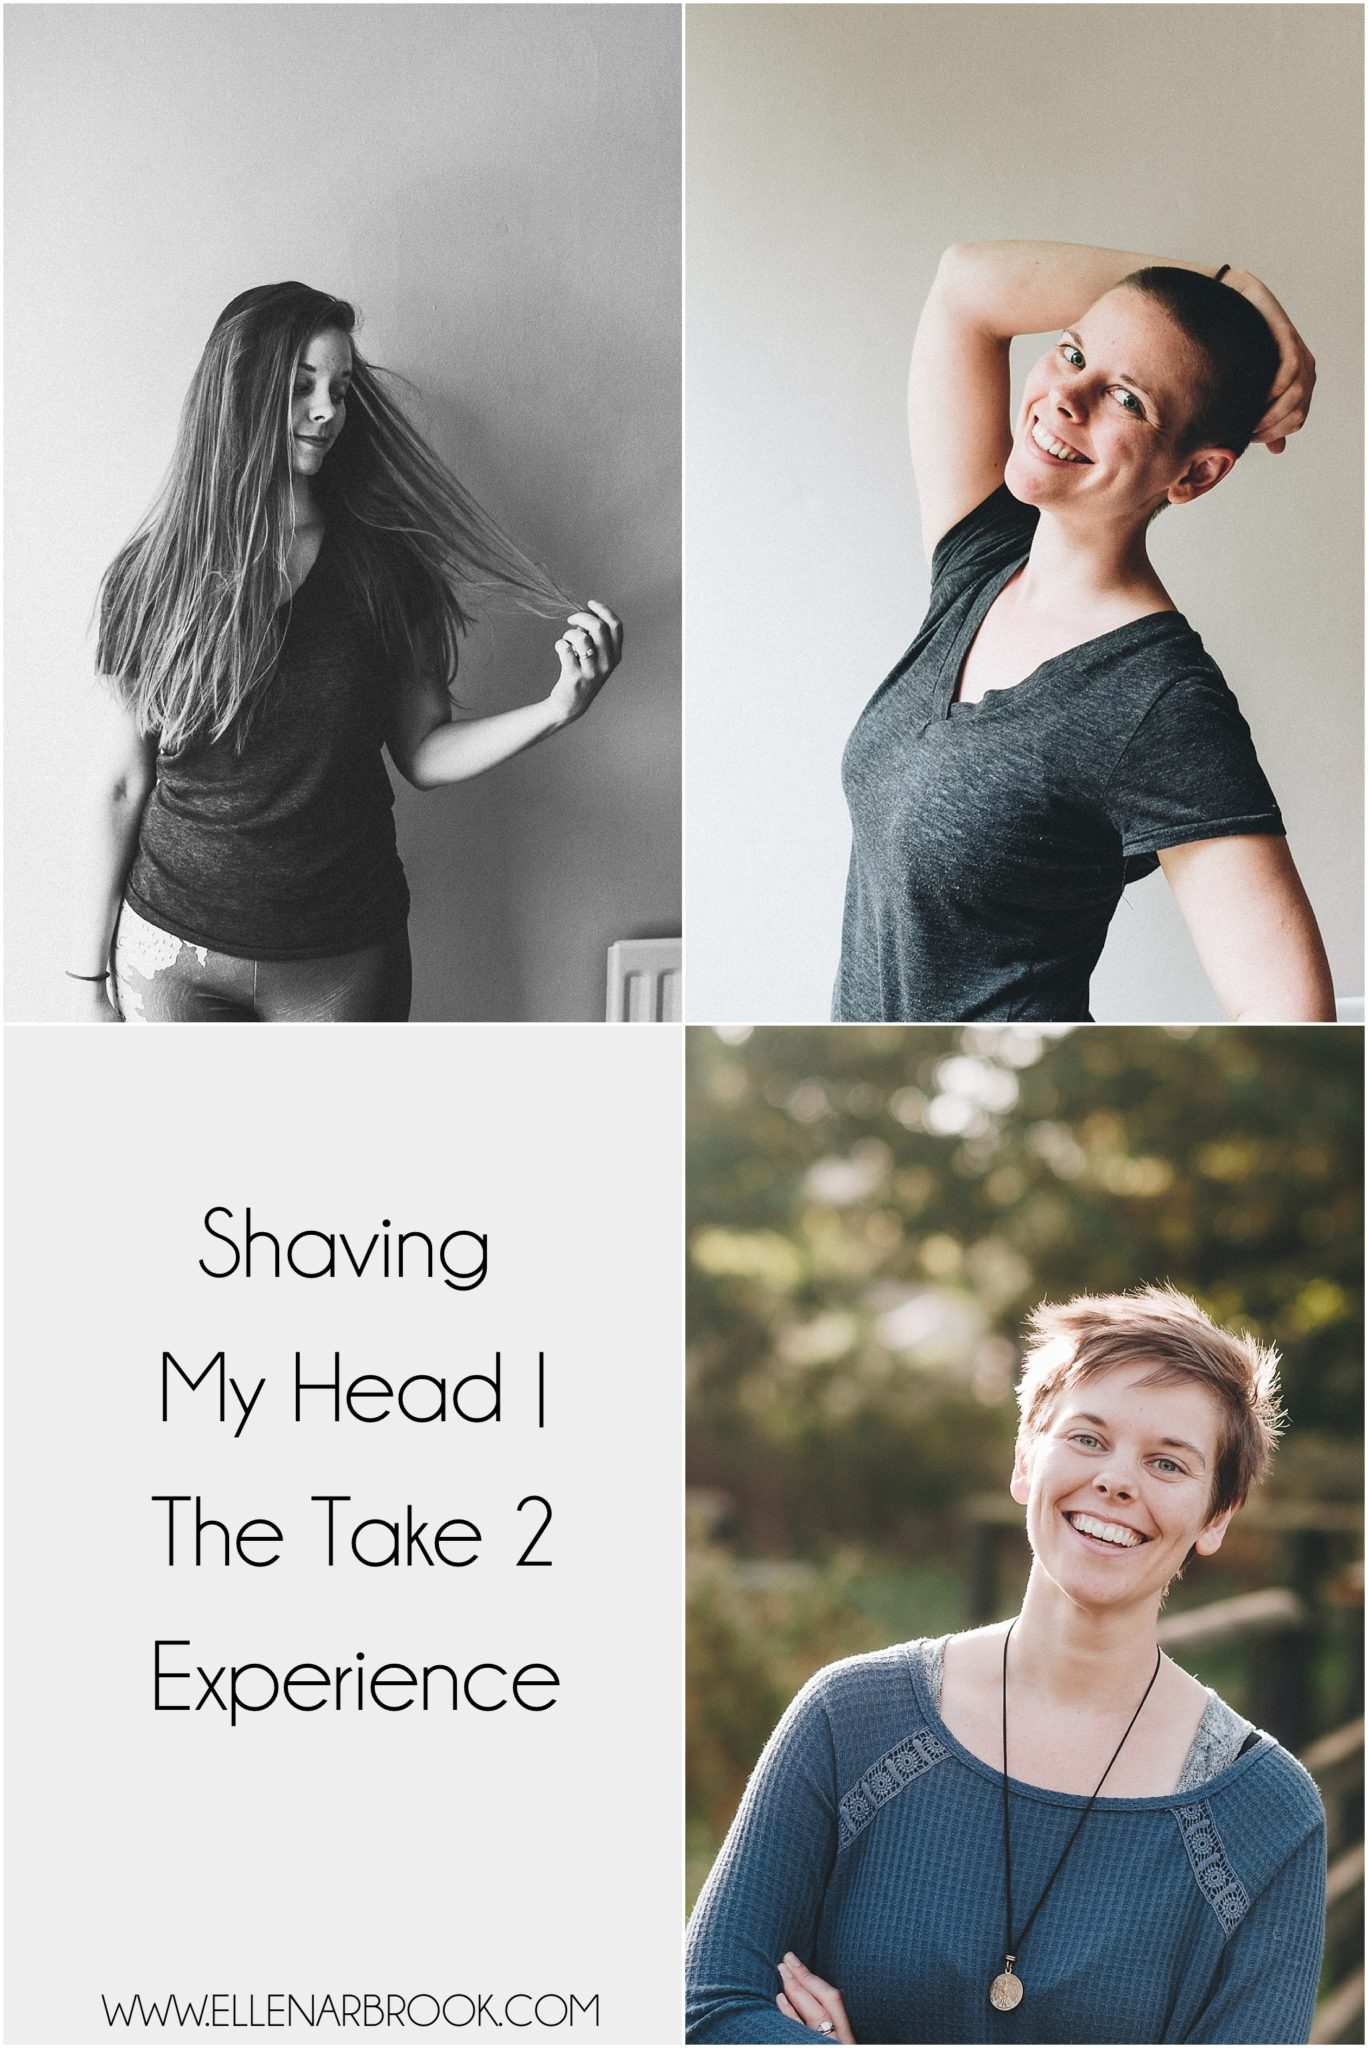 Shaving my head | the take 2 experience. 5 years and less self doubt, more confidence.